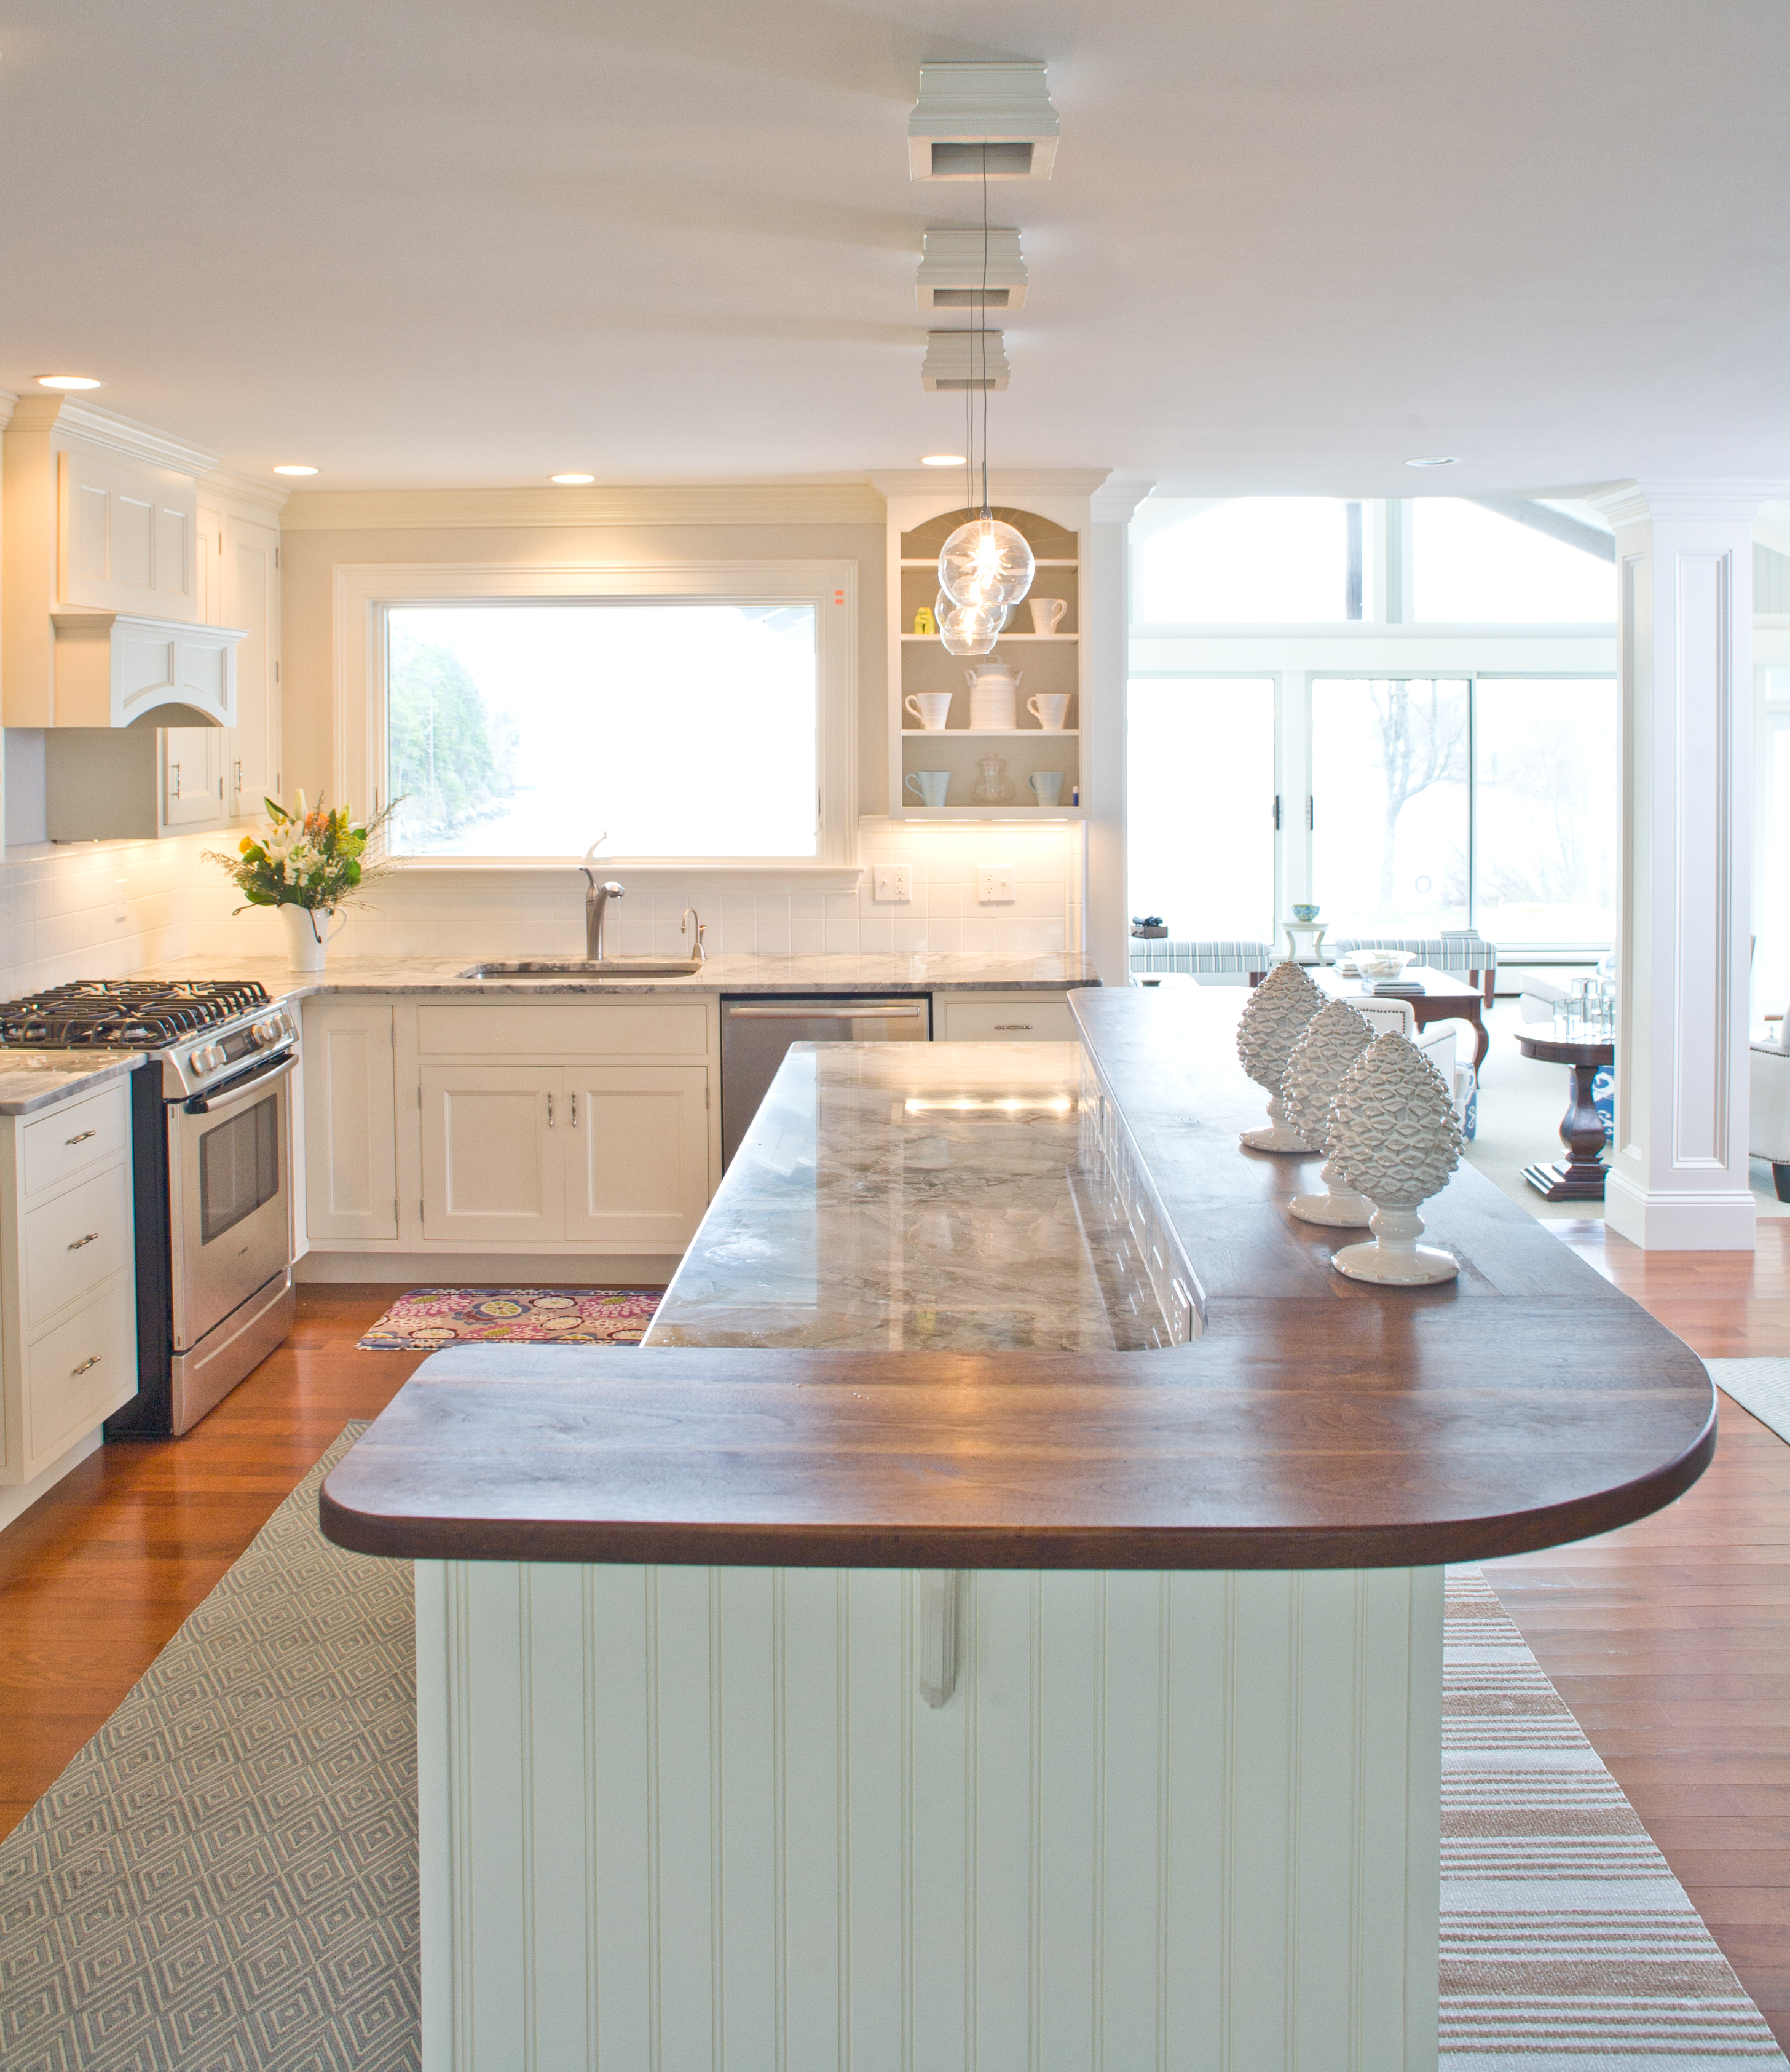 How To Design A Coastal Kitchen: Musts In Coastal Home Design.